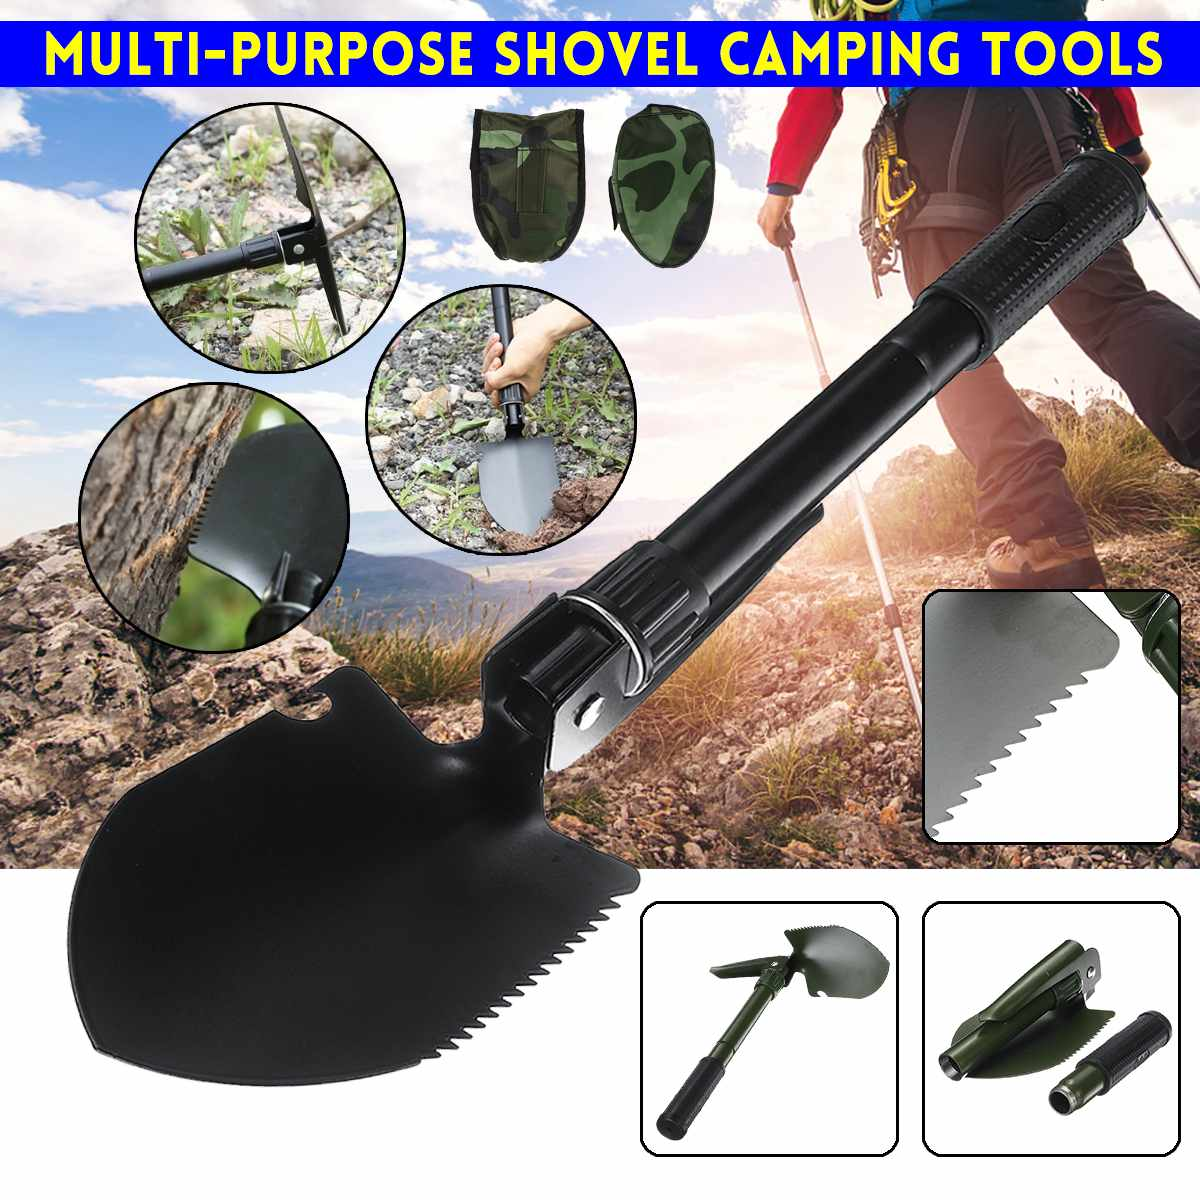 Multi-purpose Outdoor Shovel Garden Tools Folding Military Shovel Camping Defenses Security Tools